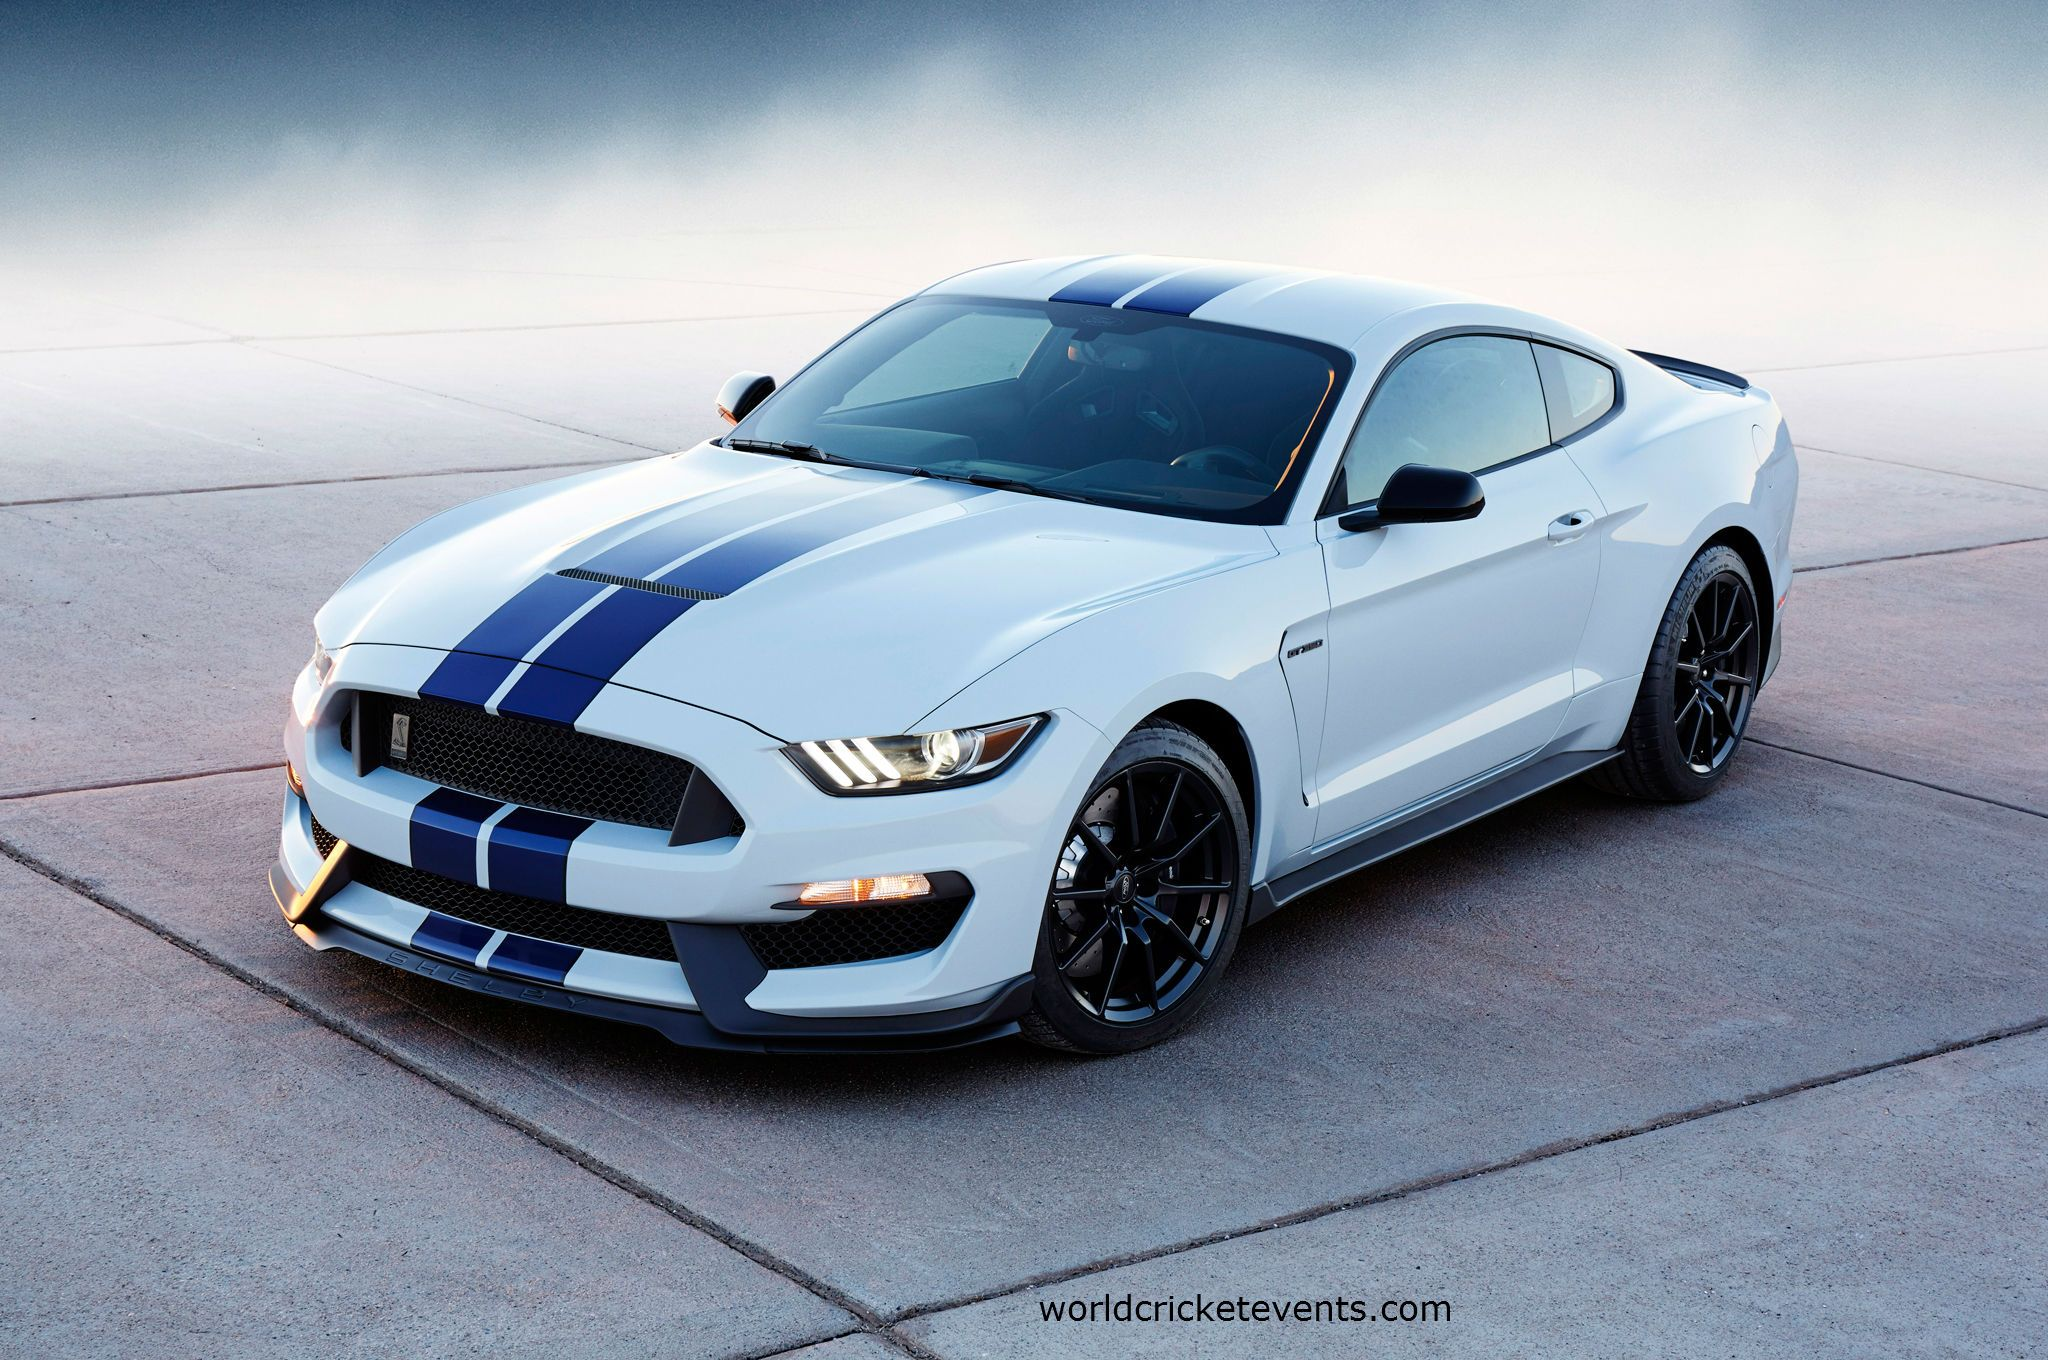 the 2015 mustang was revamped so the 2016 ford mustang really didnt need too many changes the newest model continues to appeal to consumers thanks to its - Sports Cars 2015 Mustang